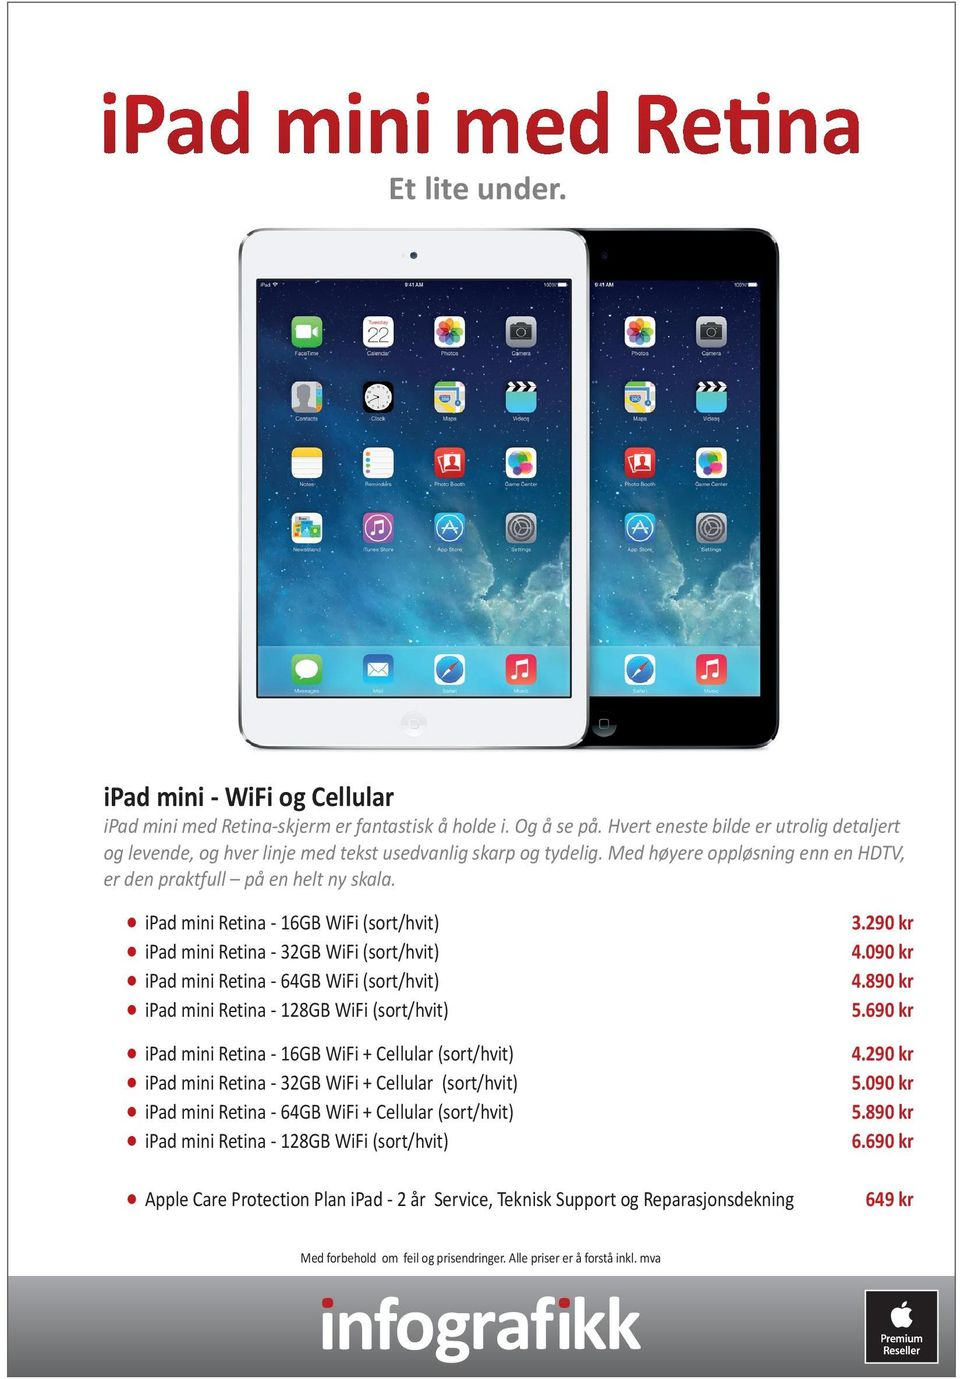 ipad mini Retina - 16GB WiFi (sort/hvit) ipad mini Retina - 32GB WiFi (sort/hvit) ipad mini Retina - 64GB WiFi (sort/hvit) ipad mini Retina - 128GB WiFi (sort/hvit) ipad mini Retina - 16GB WiFi +